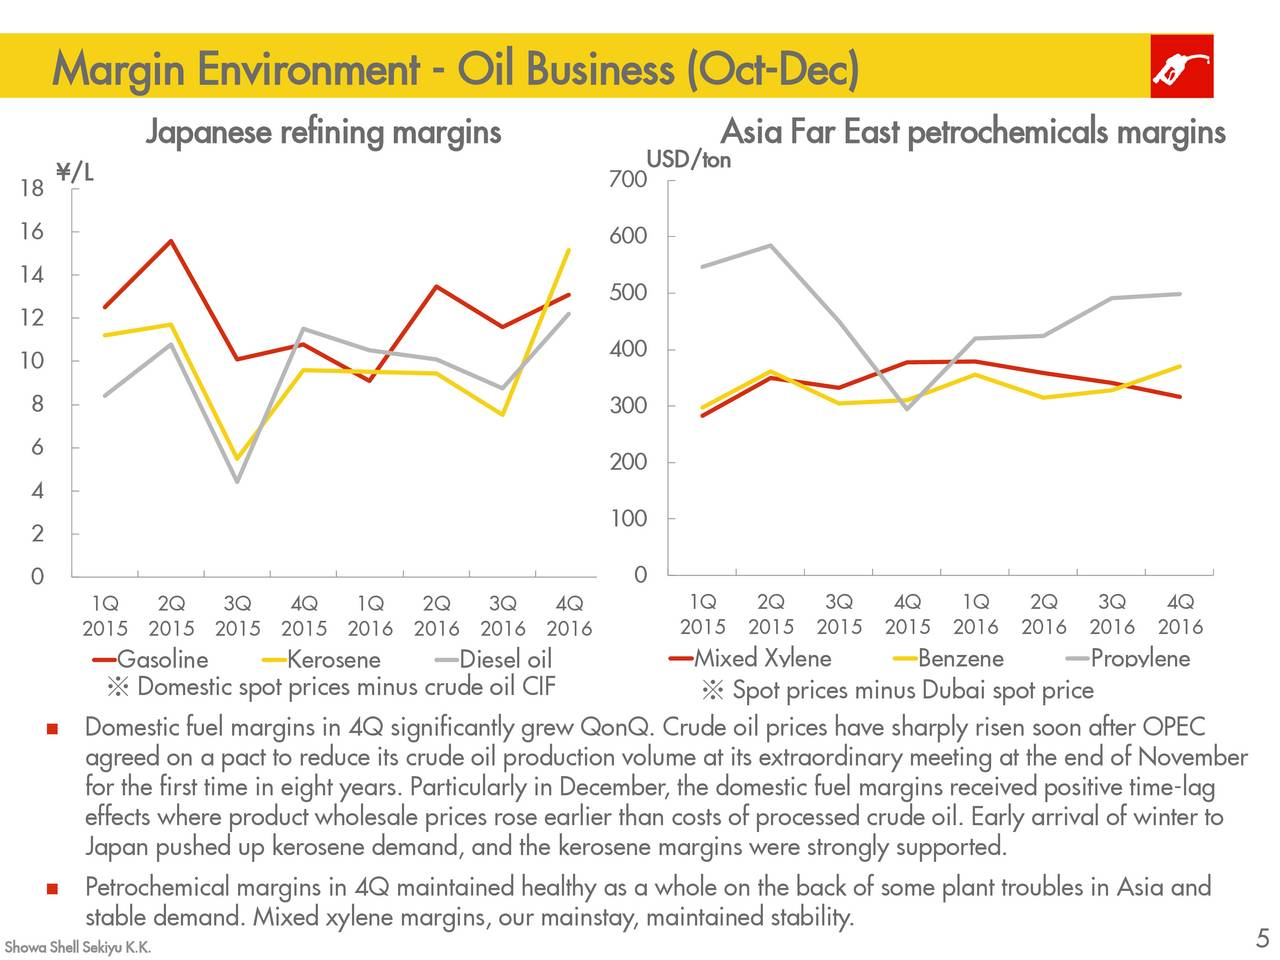 price stability on oil and petrochemicals However, the effects of low oil prices on downstream companies vary by segment and, within some segments, by region below we examine the dynamics of three critical segments of the downstream sector: refining, petrochemicals, and specialty products.